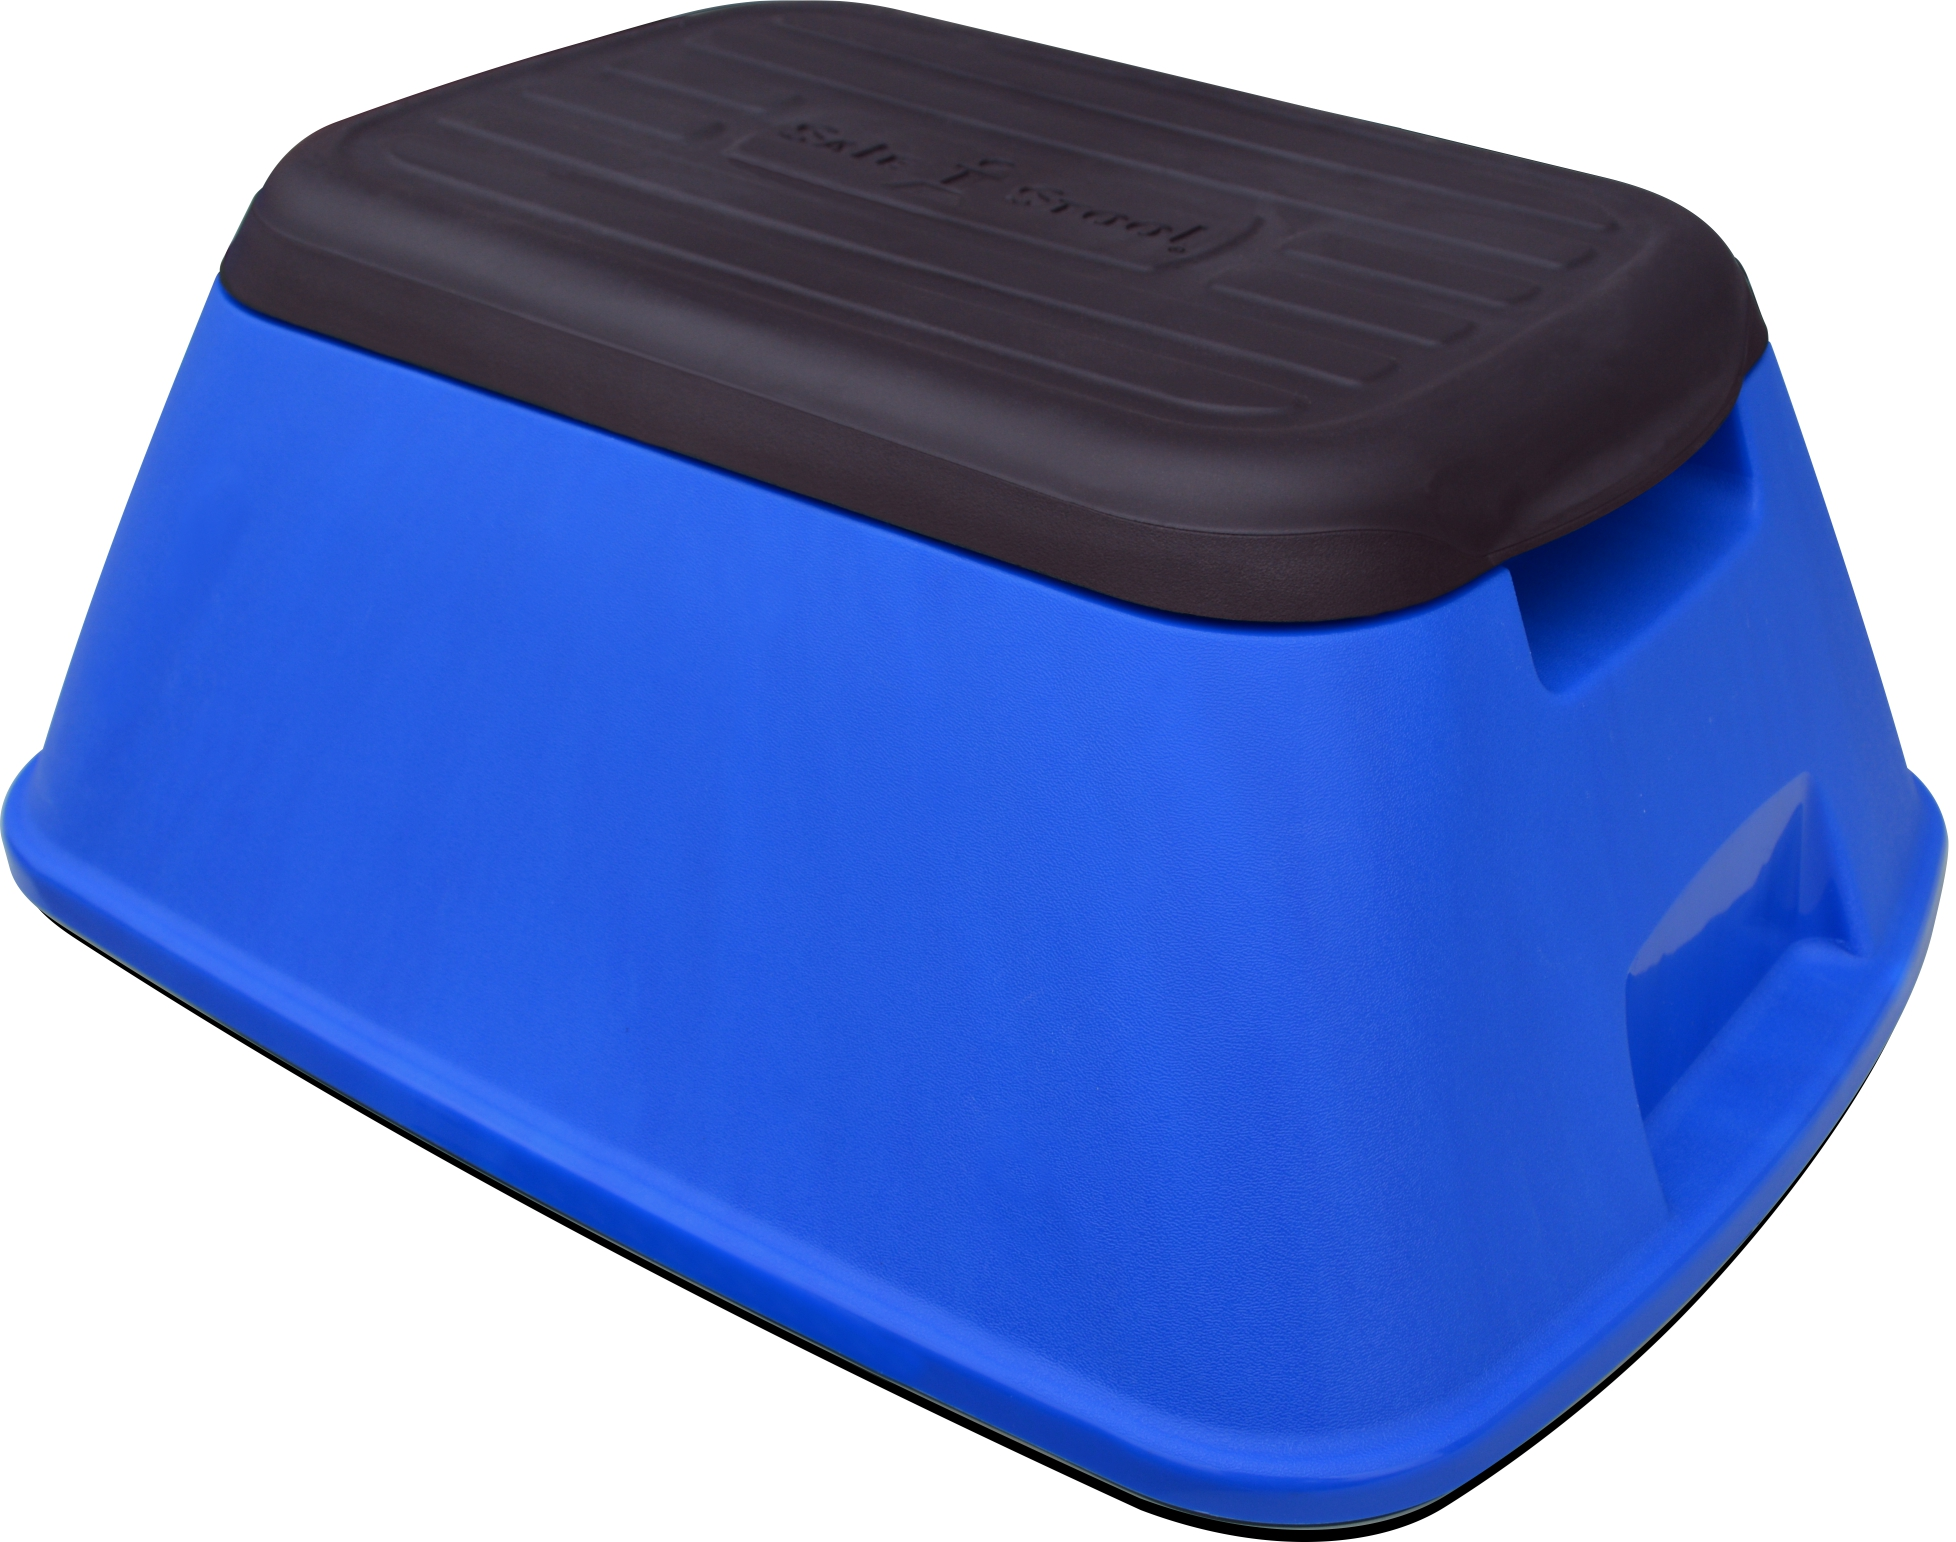 Safe-T-Stool (Matte Blue) � Lot of 10 Stools by Safe-T-Stool